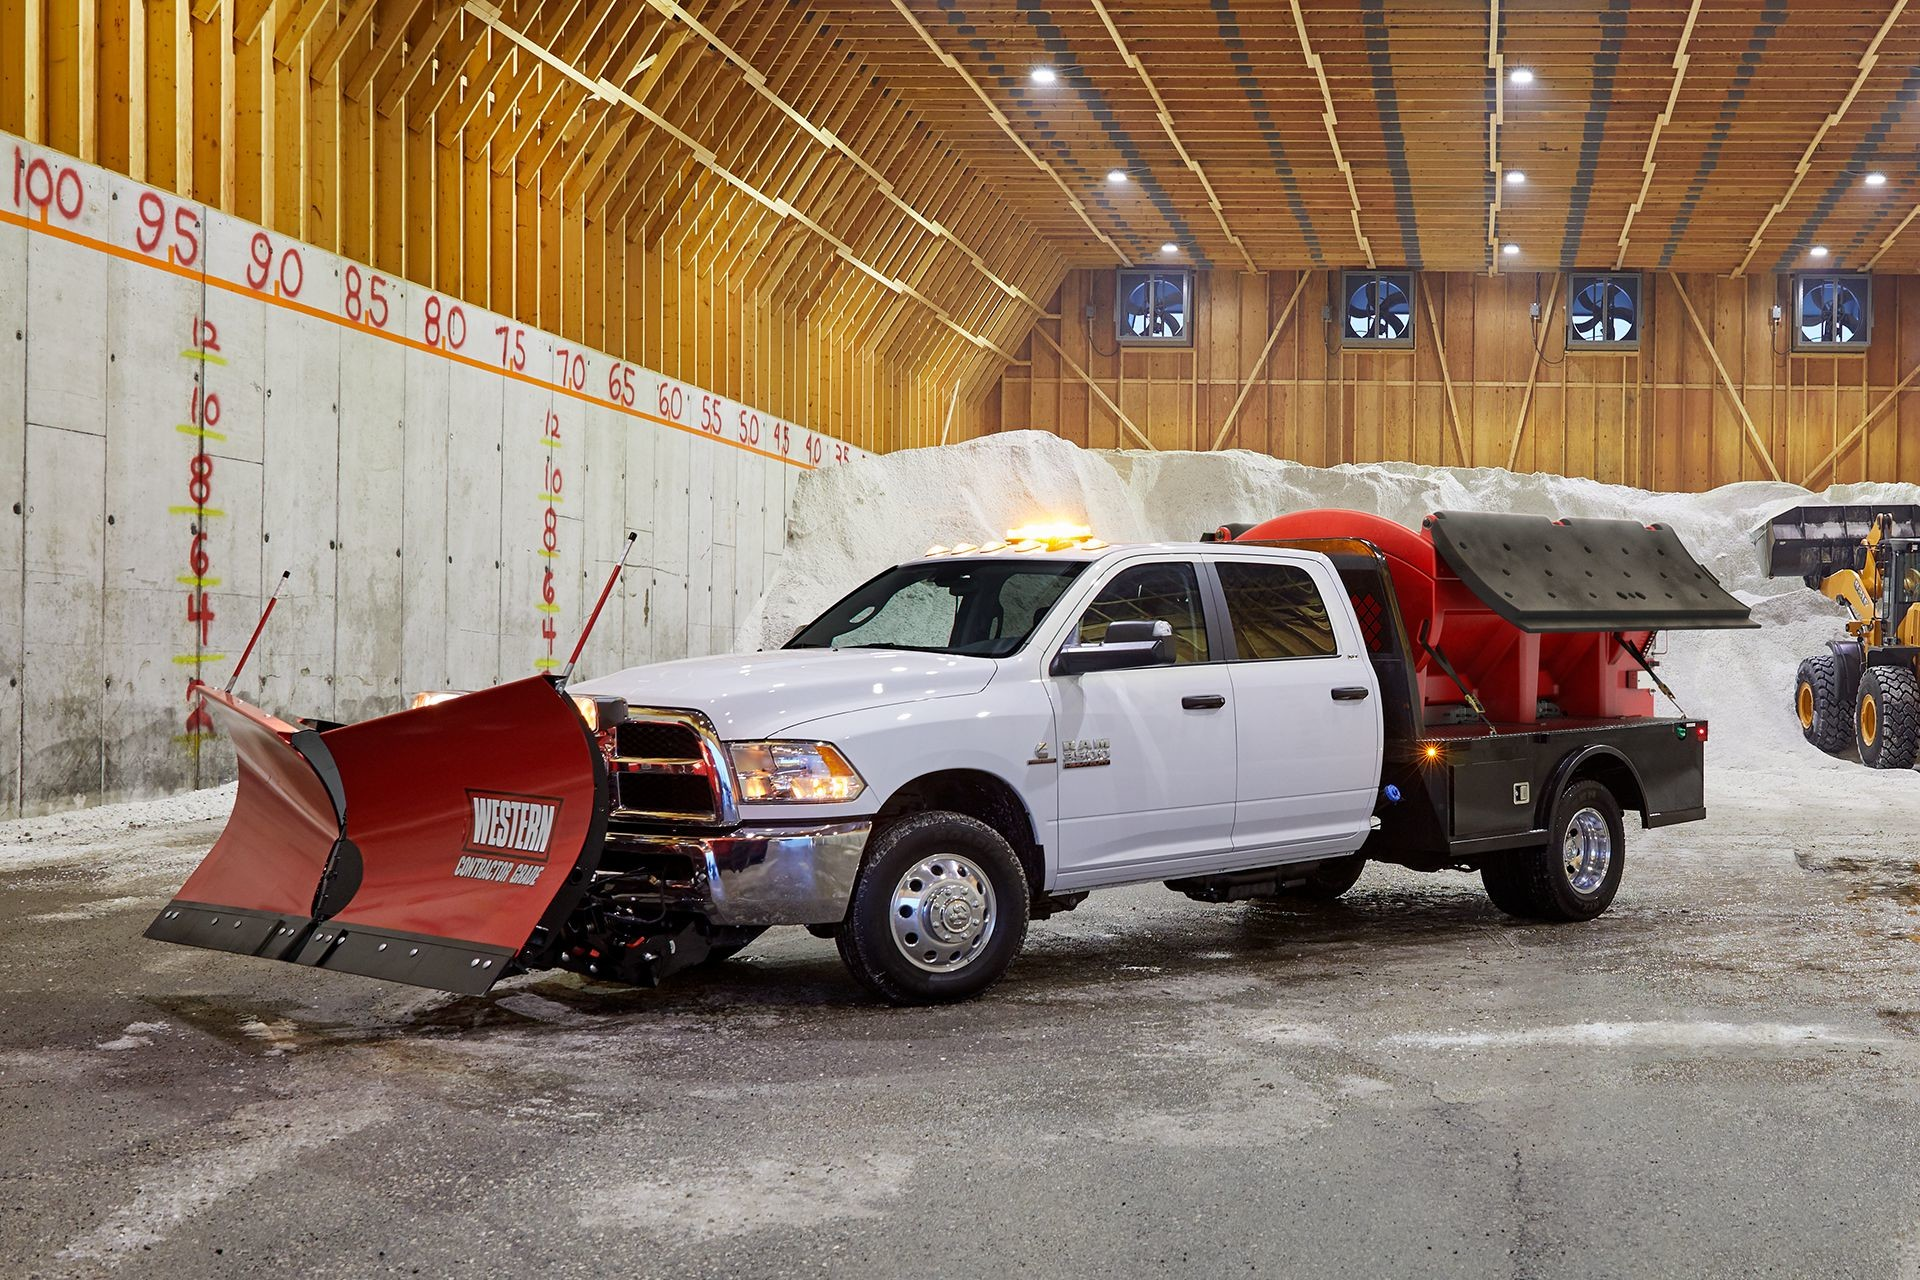 2018 RAM Chassis Cab heavy duty snowplow capabilities